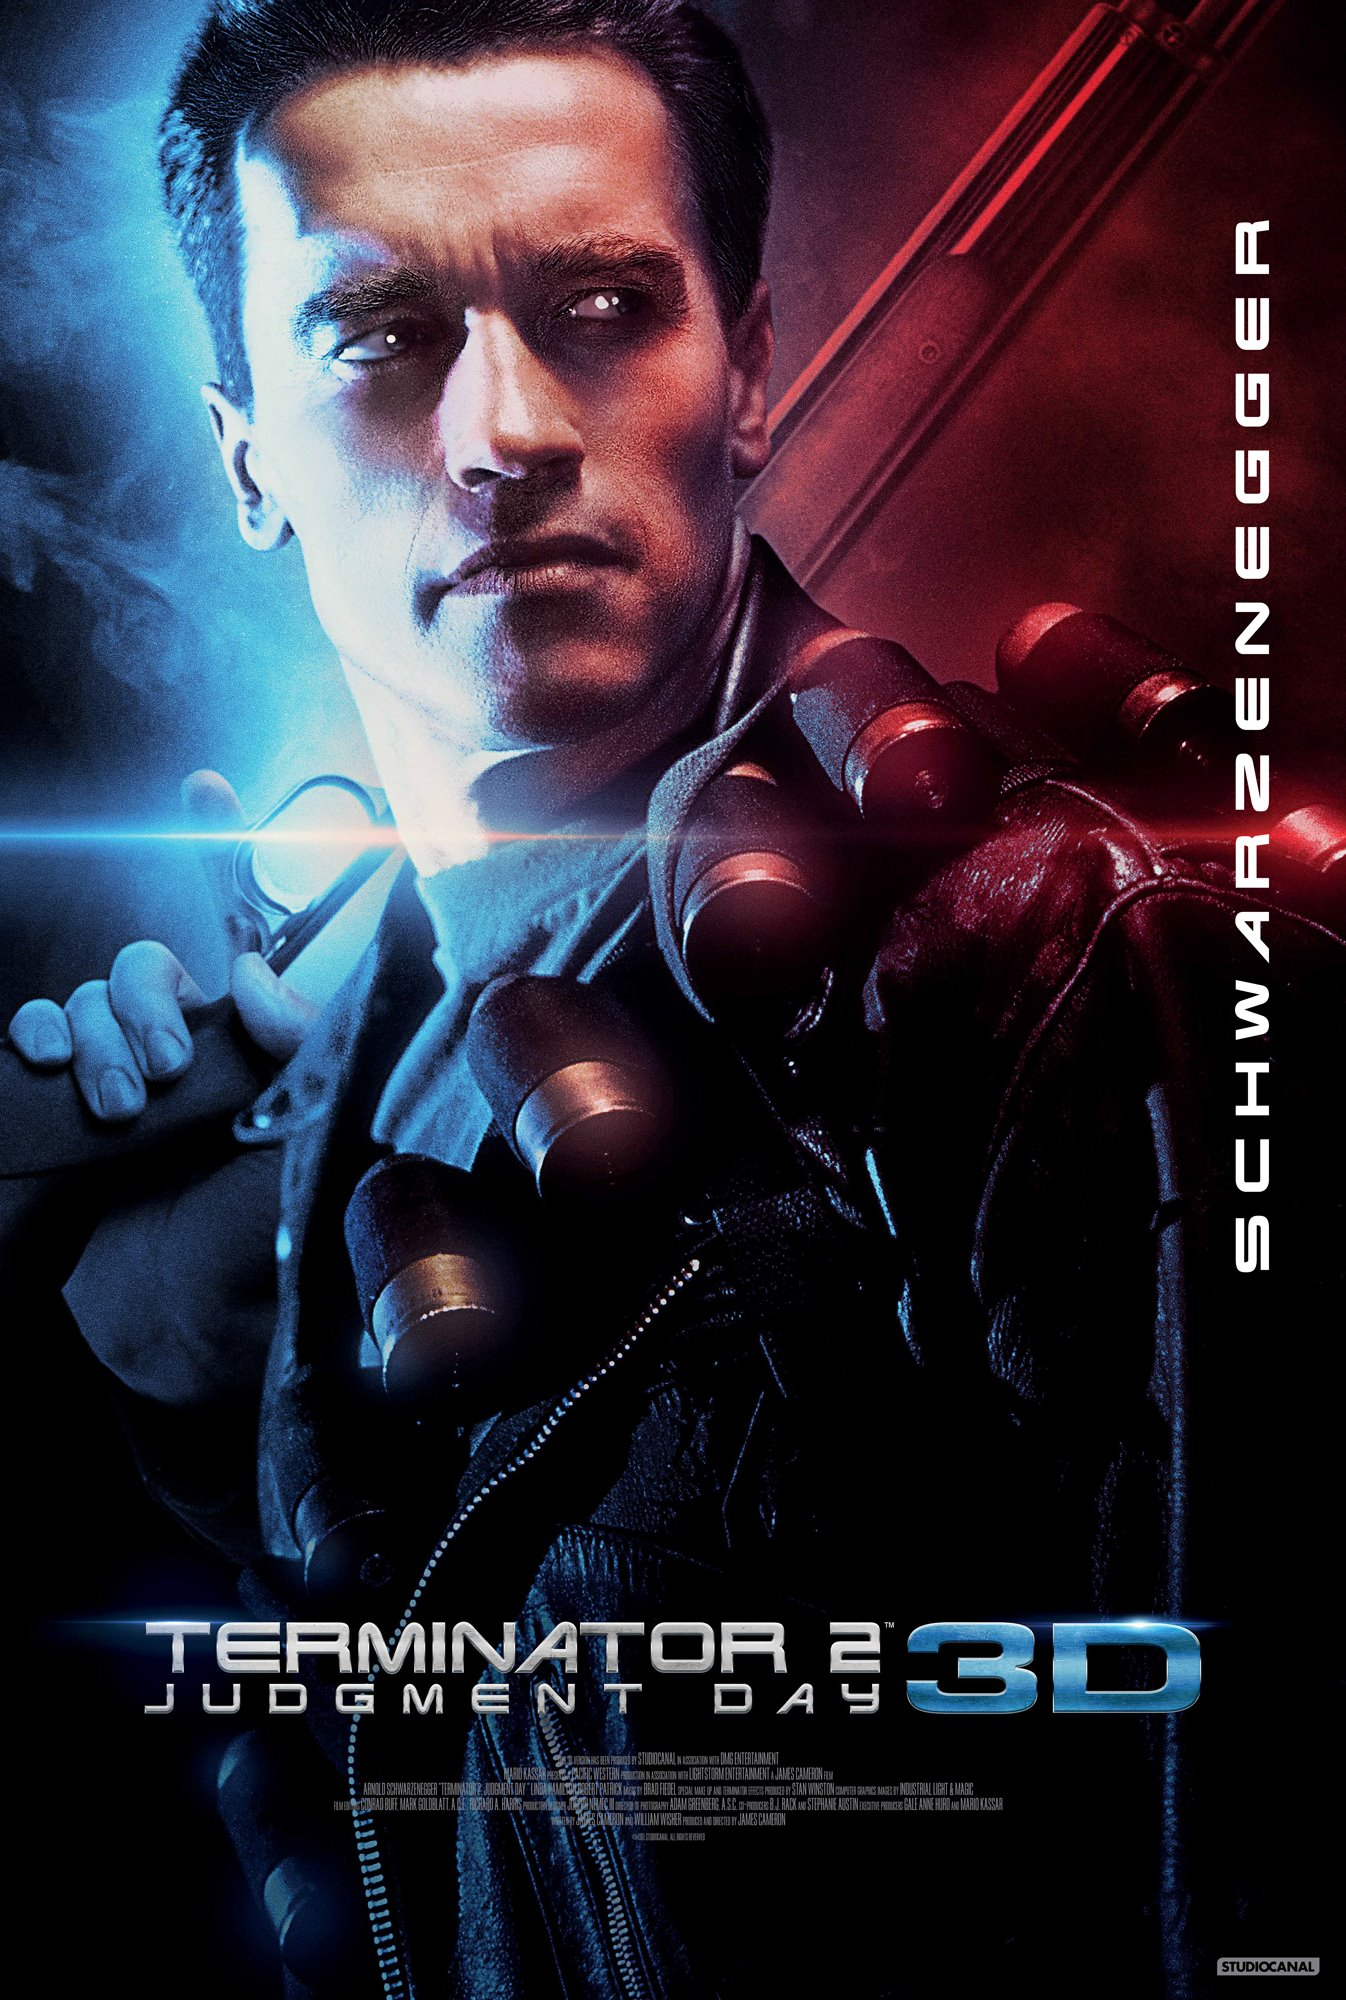 Primer póster de Terminator 2: Judgment Day 3D.